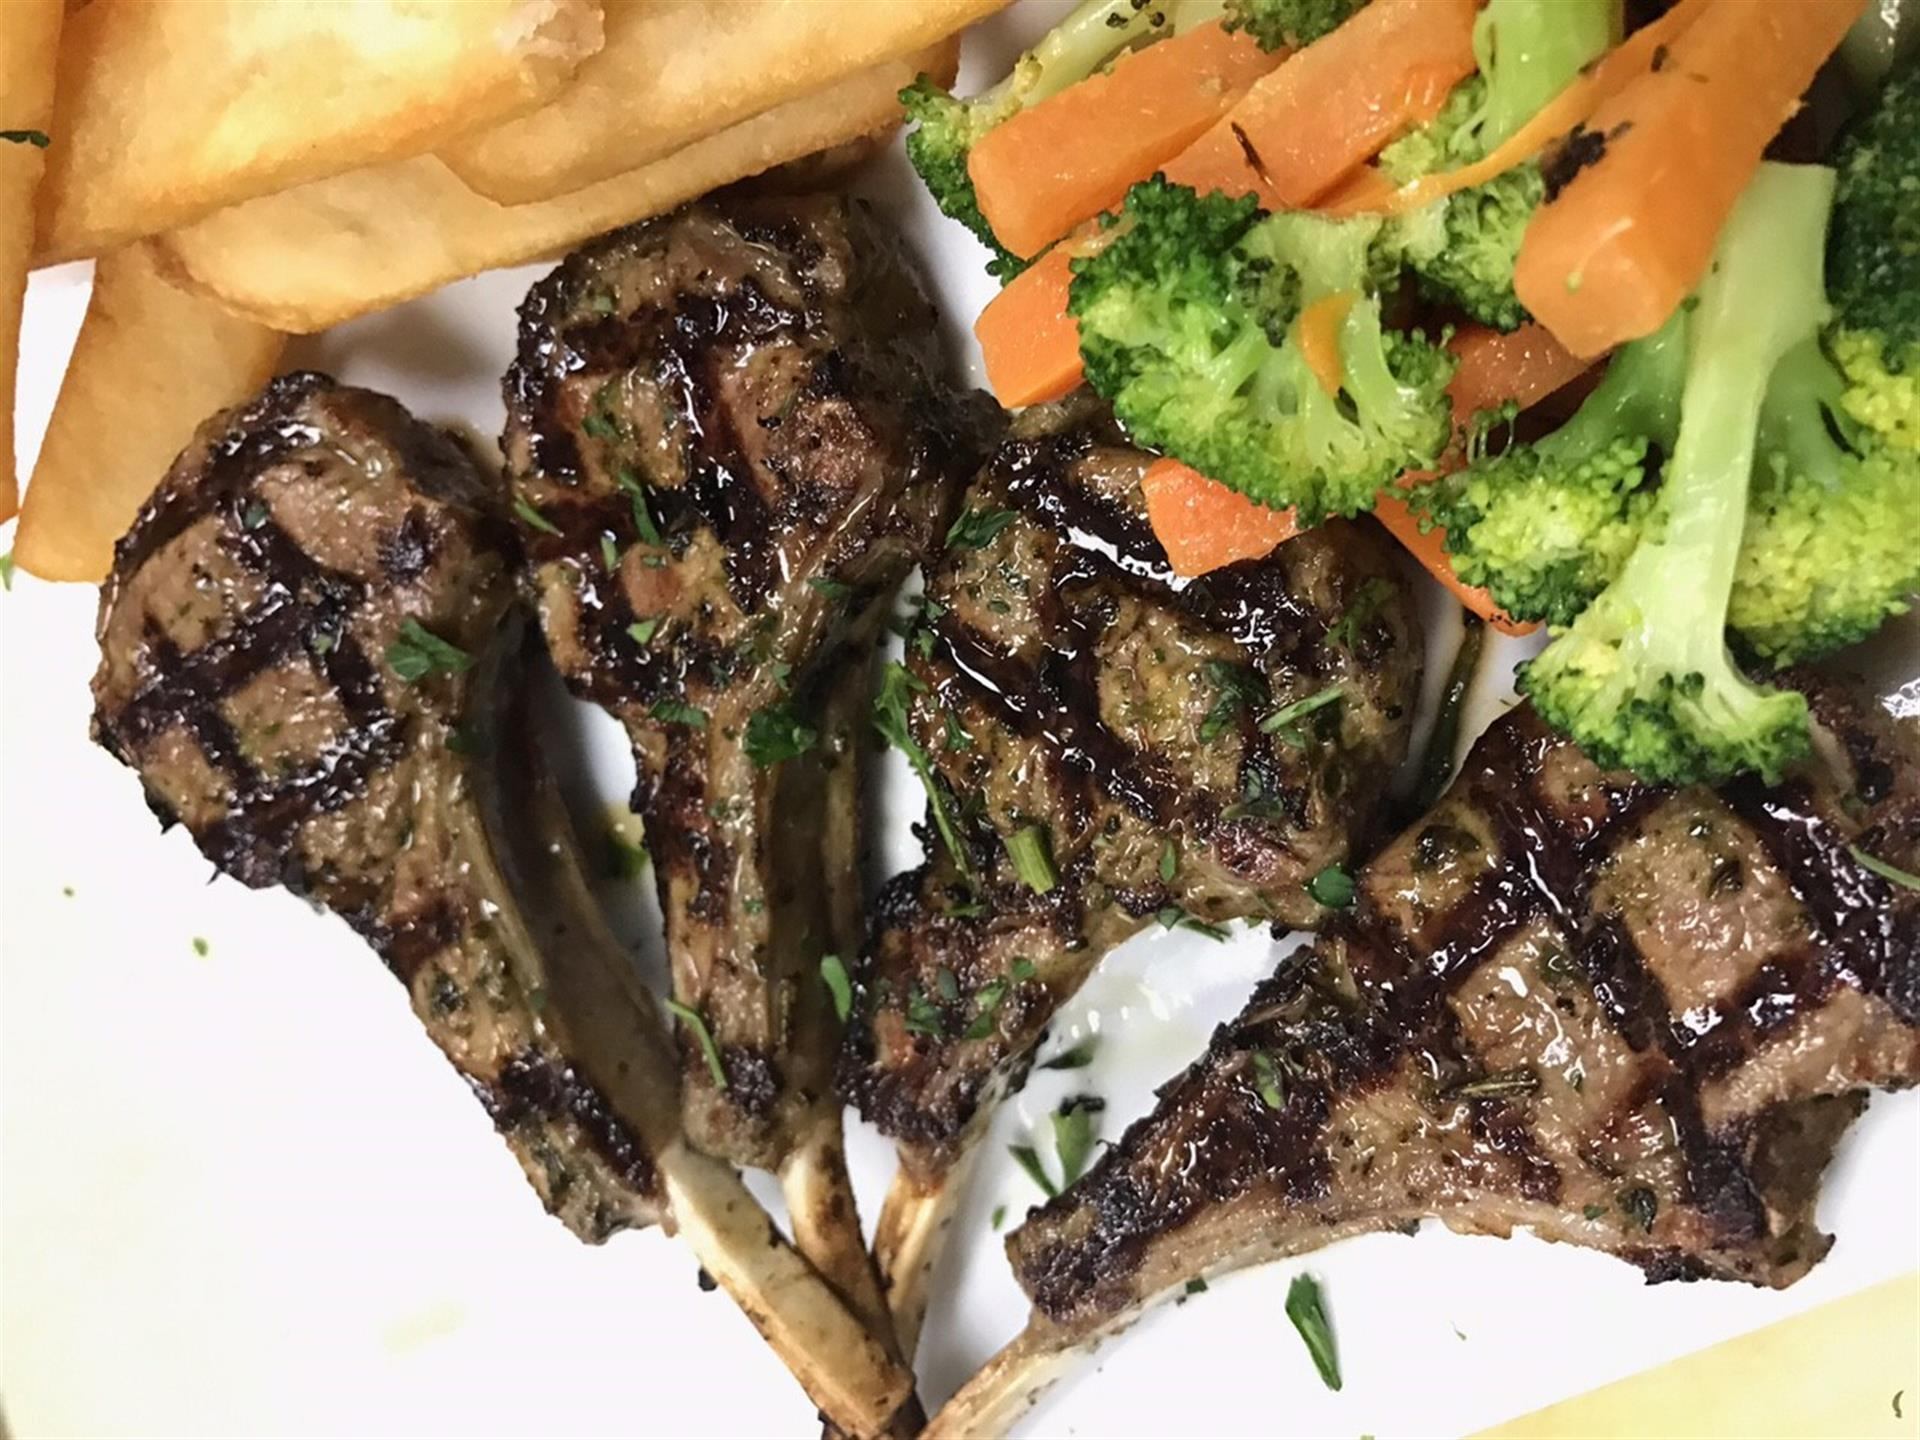 lamb chops with veggies on the side